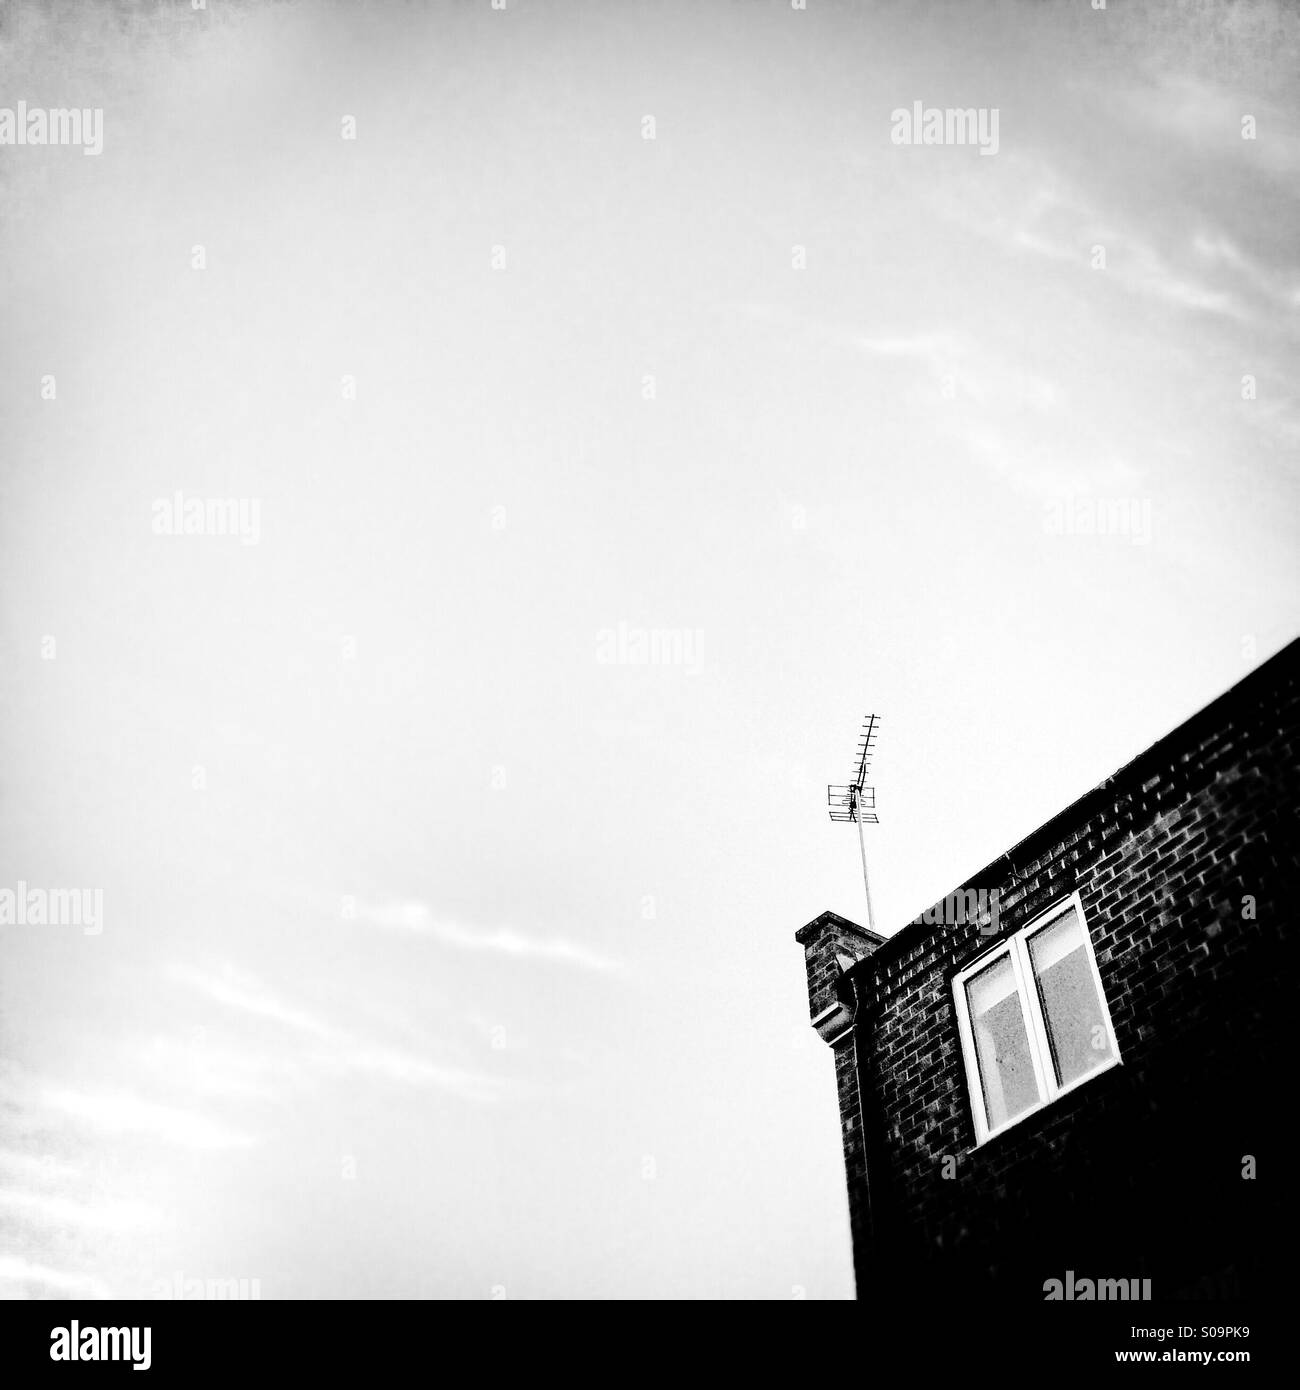 Television aerial on roof of house - Stock Image